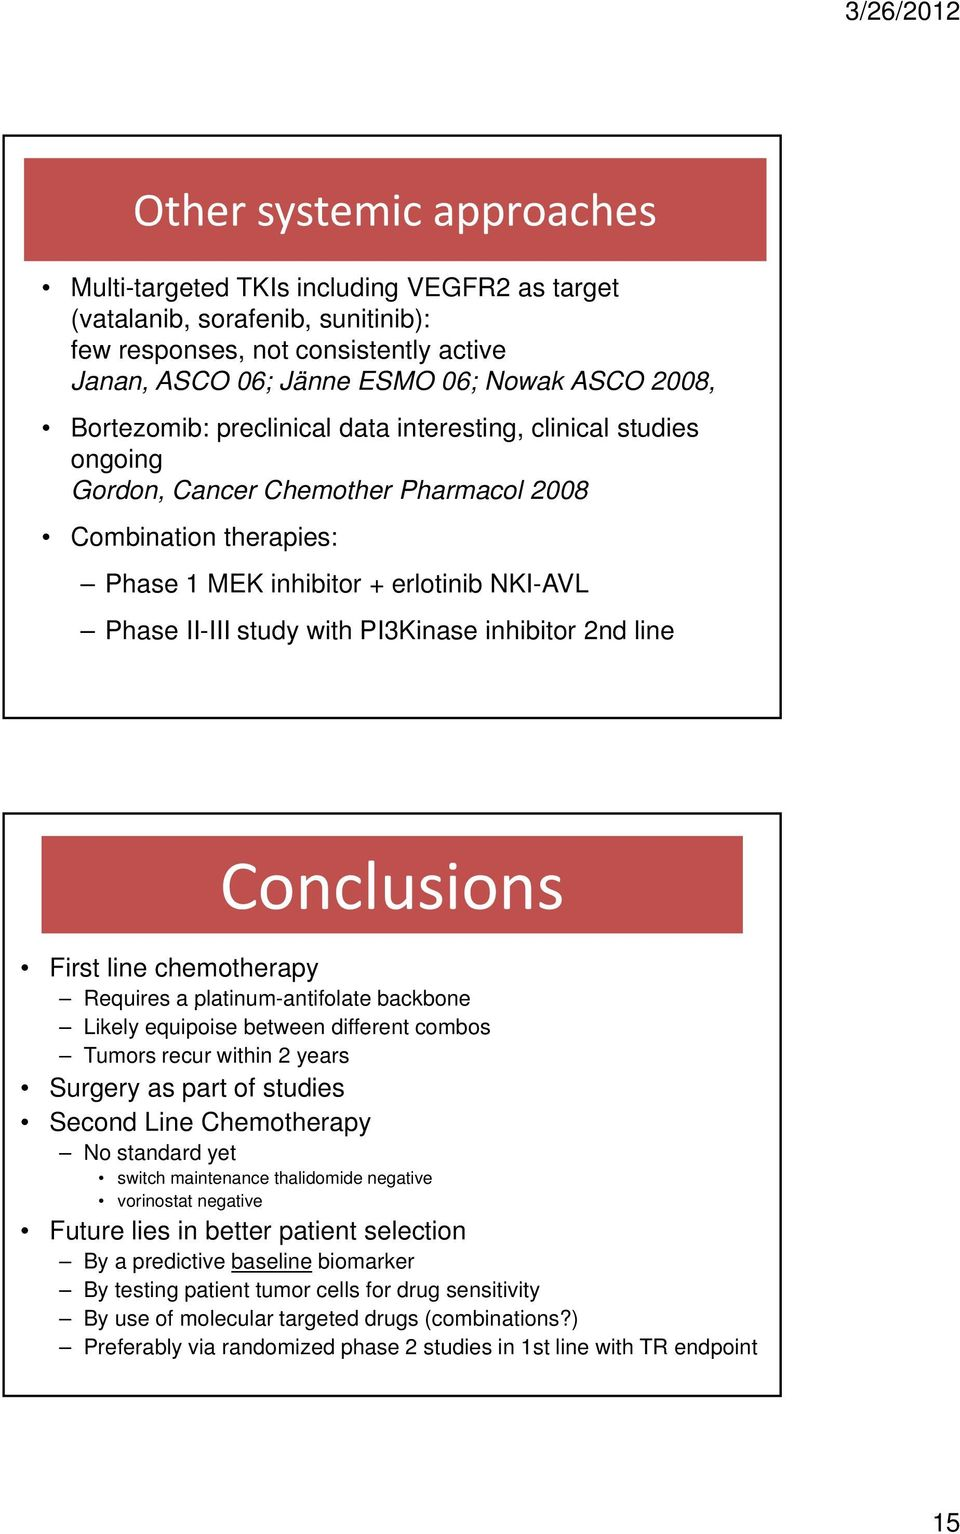 PI3Kinase inhibitor 2nd line Conclusions First line chemotherapy Requires a platinum-antifolate backbone Likely equipoise between different combos Tumors recur within 2 years Surgery as part of